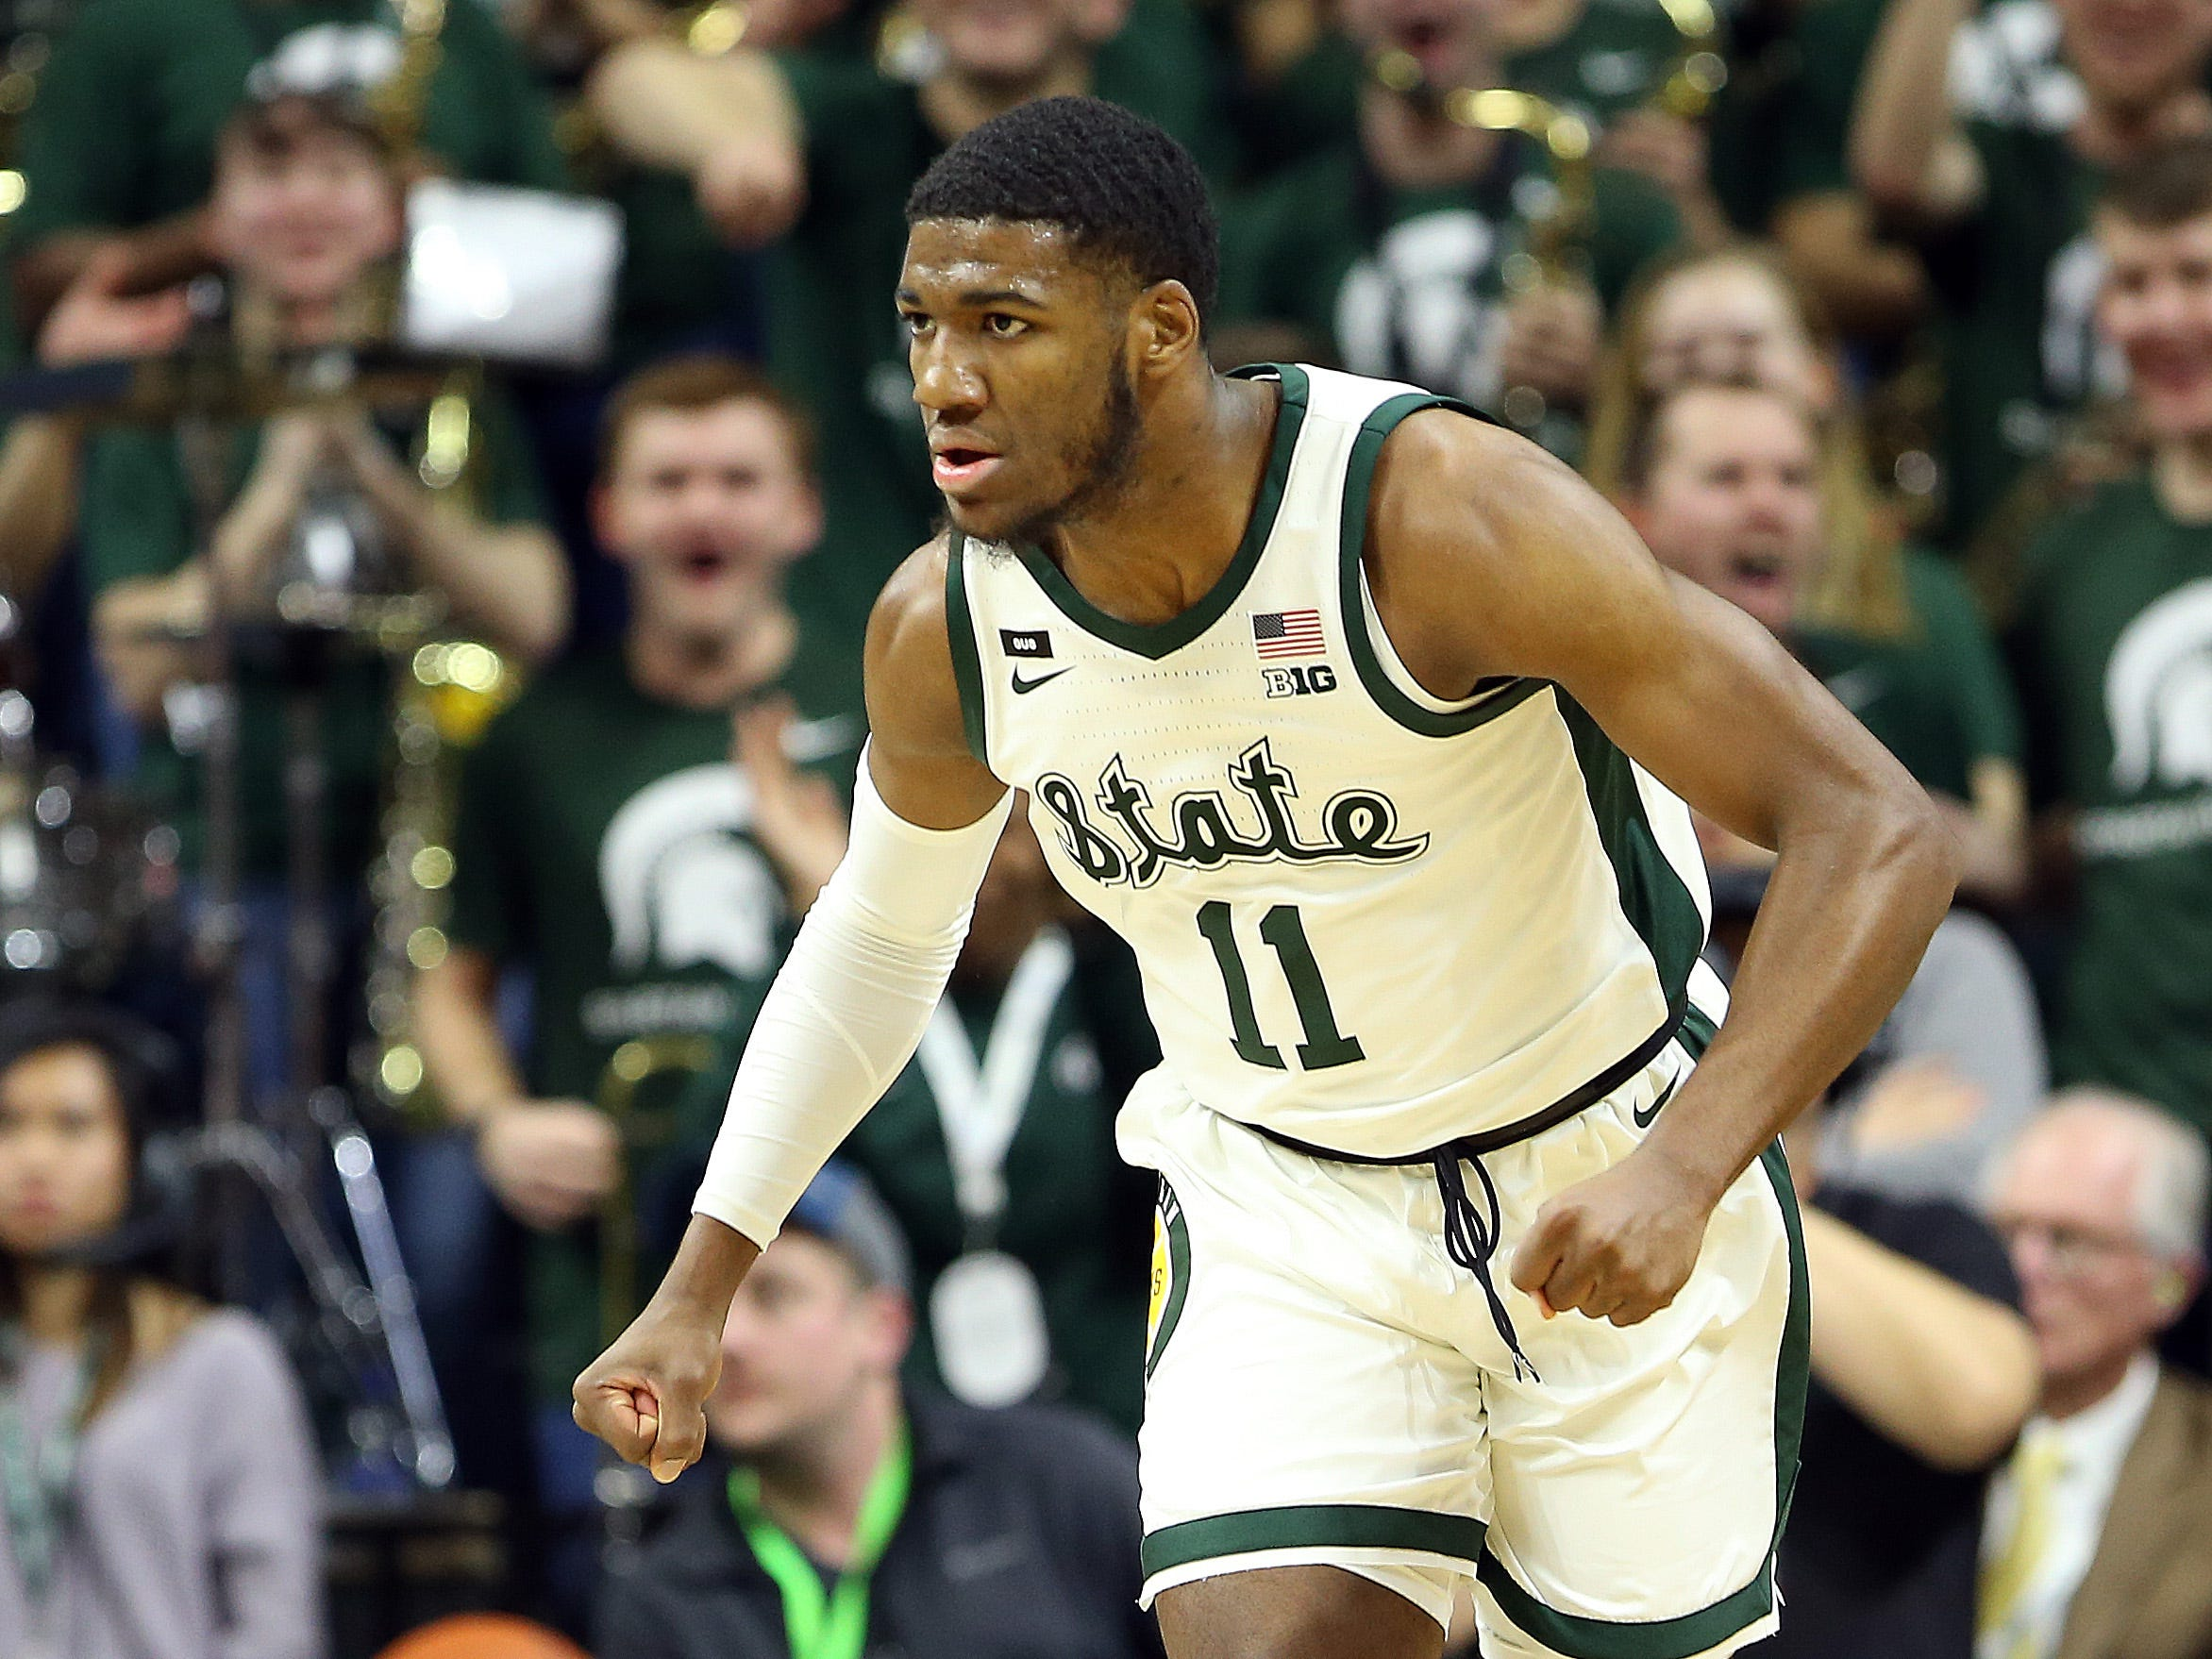 Aaron Henry has only scored in double digits once this season, with 12 points against Maryland (pictured). That's remarkable given how much he's impacted MSU. The Spartans need even more from him the rest of the way.